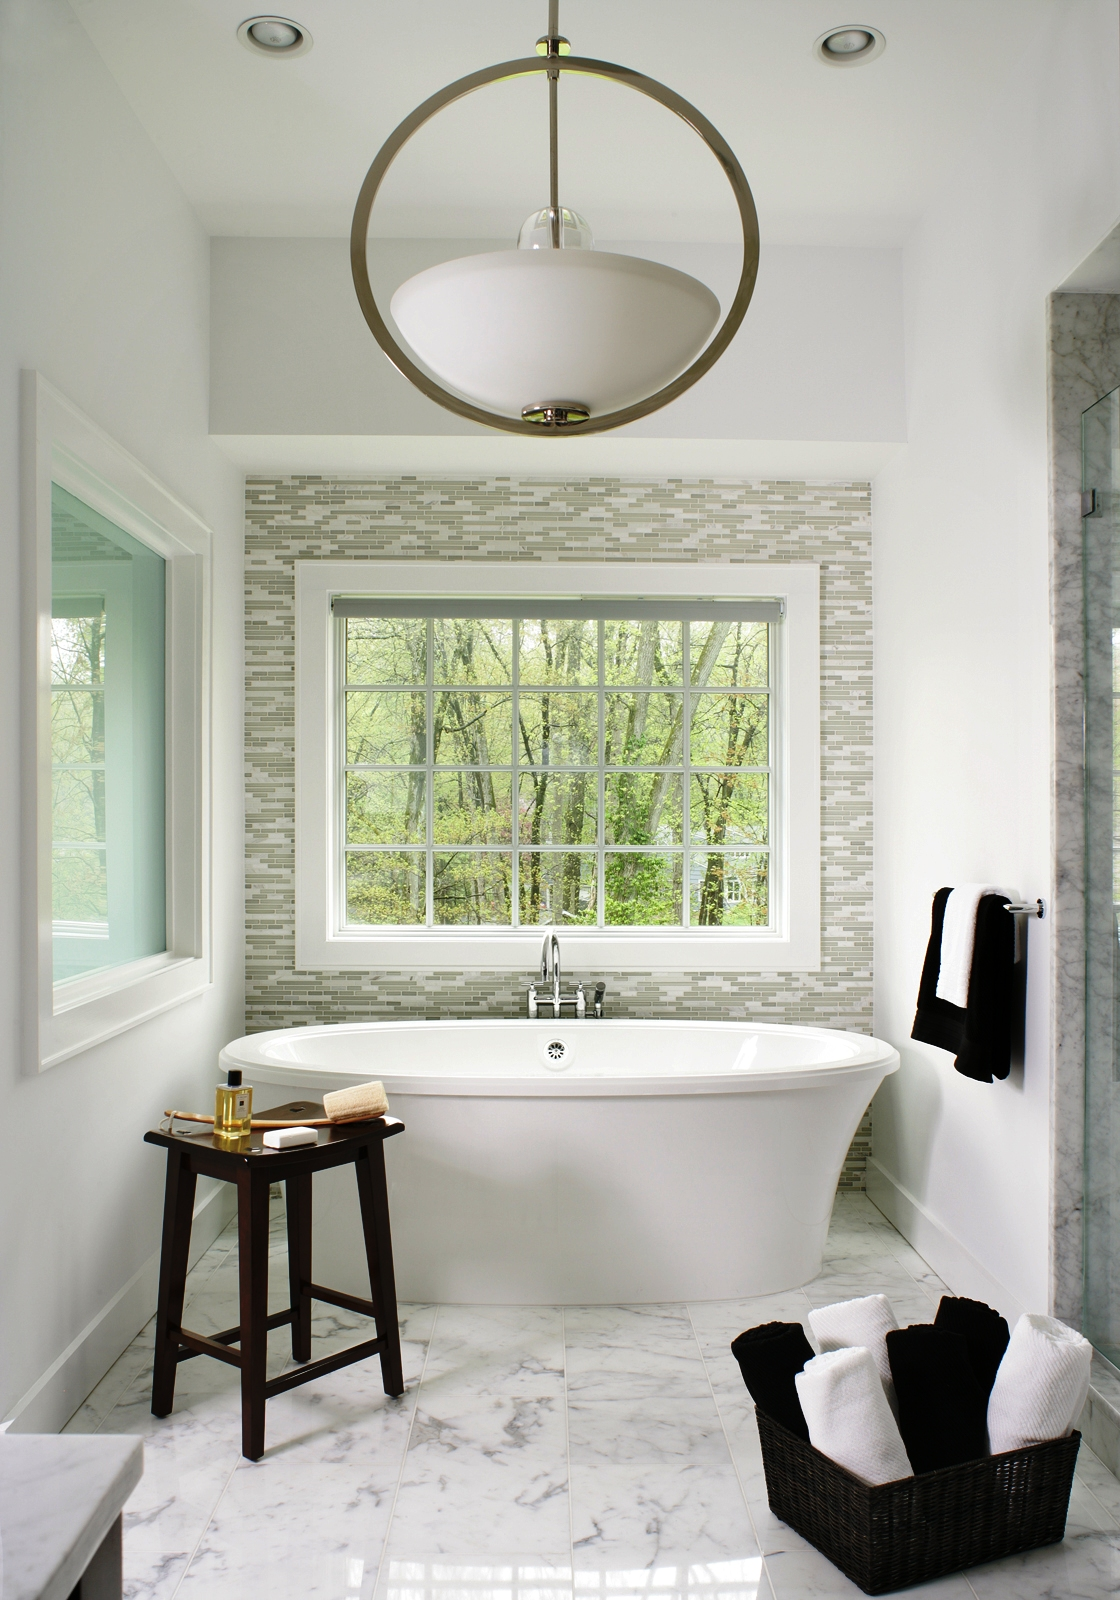 24-Transitional Bathroom Design